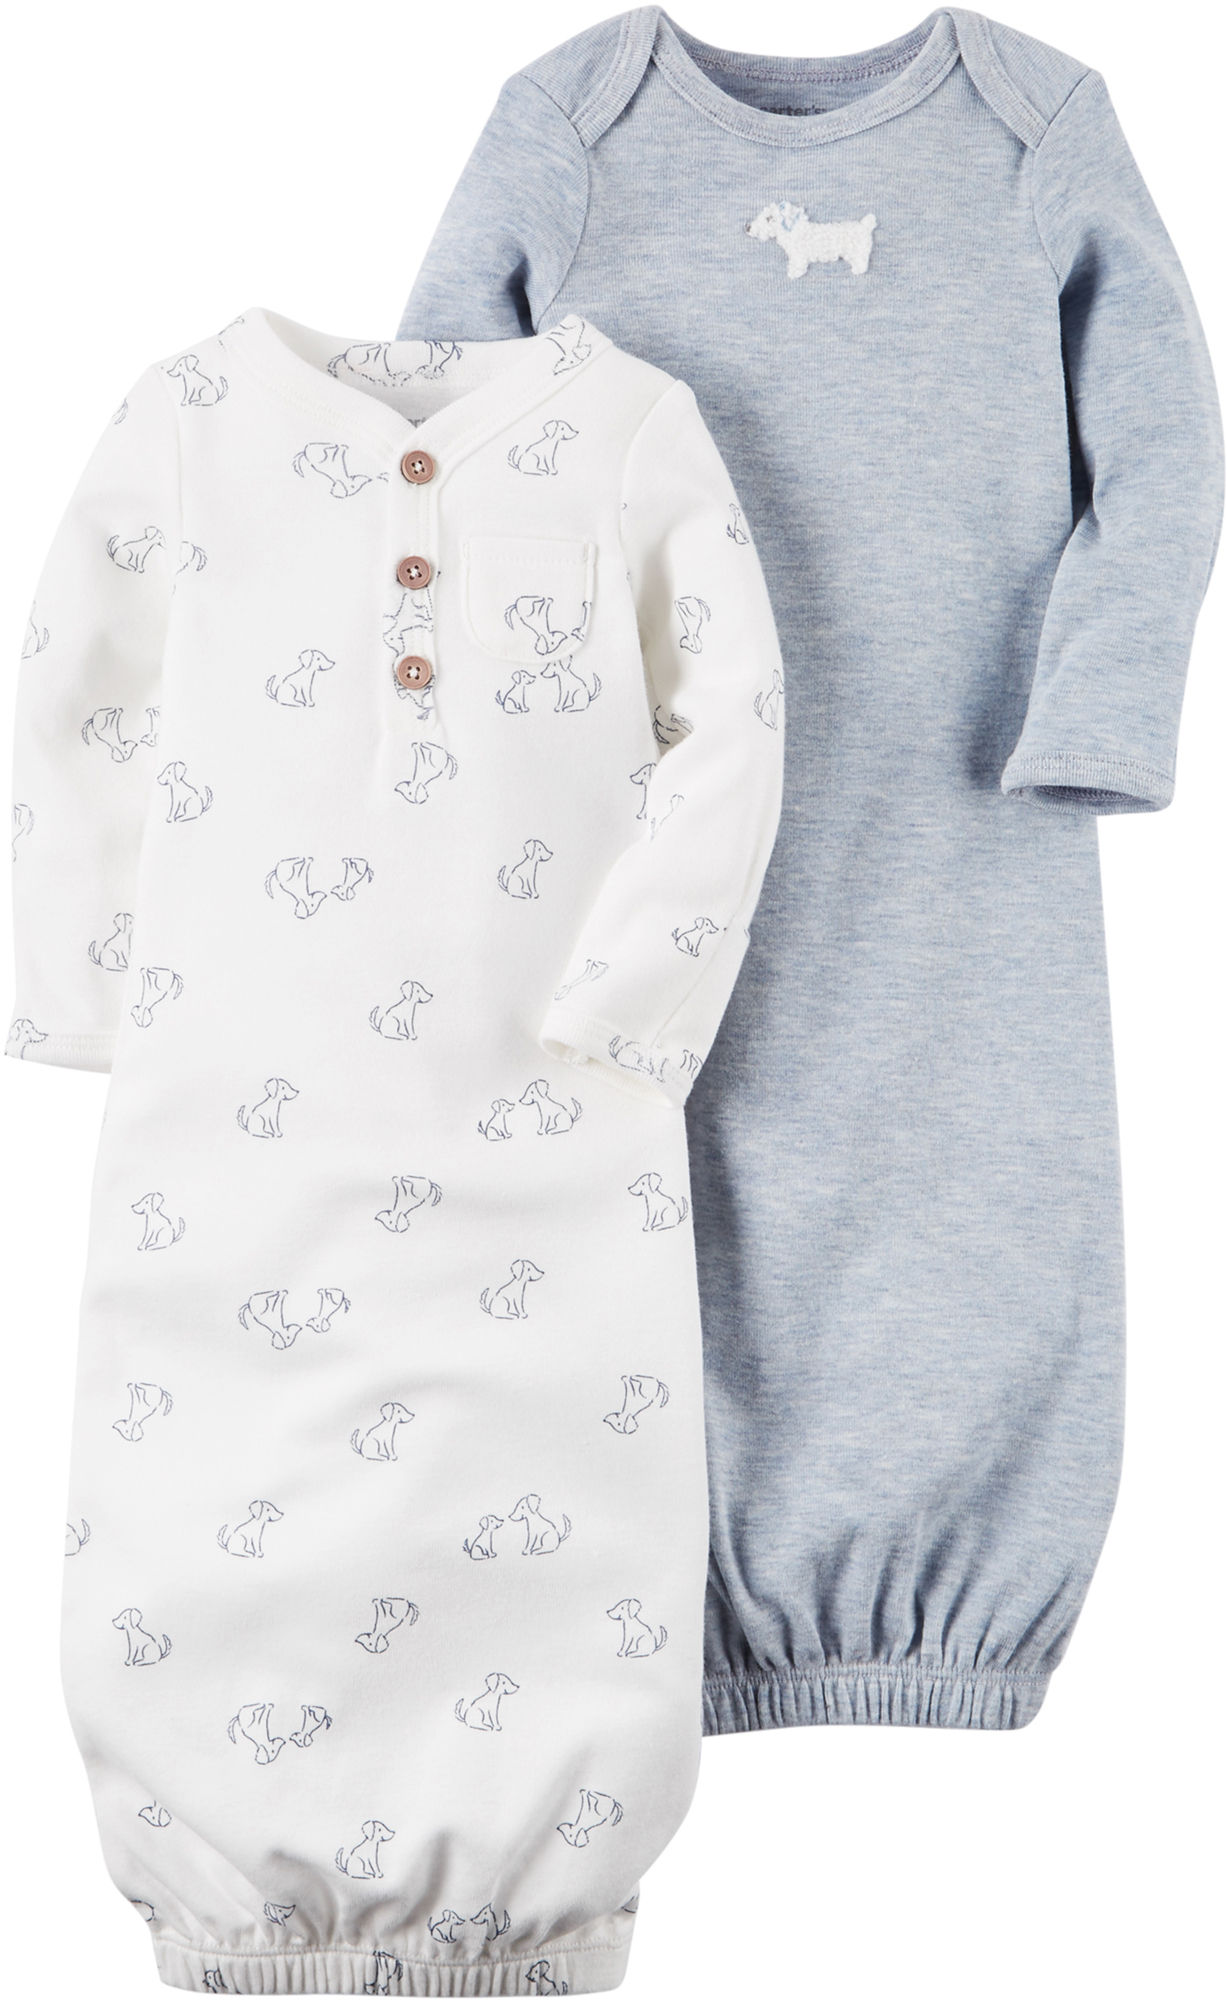 Carters Baby Boys 2-pk. Little Fella Puppy Gowns 3 Month Navy blue ...